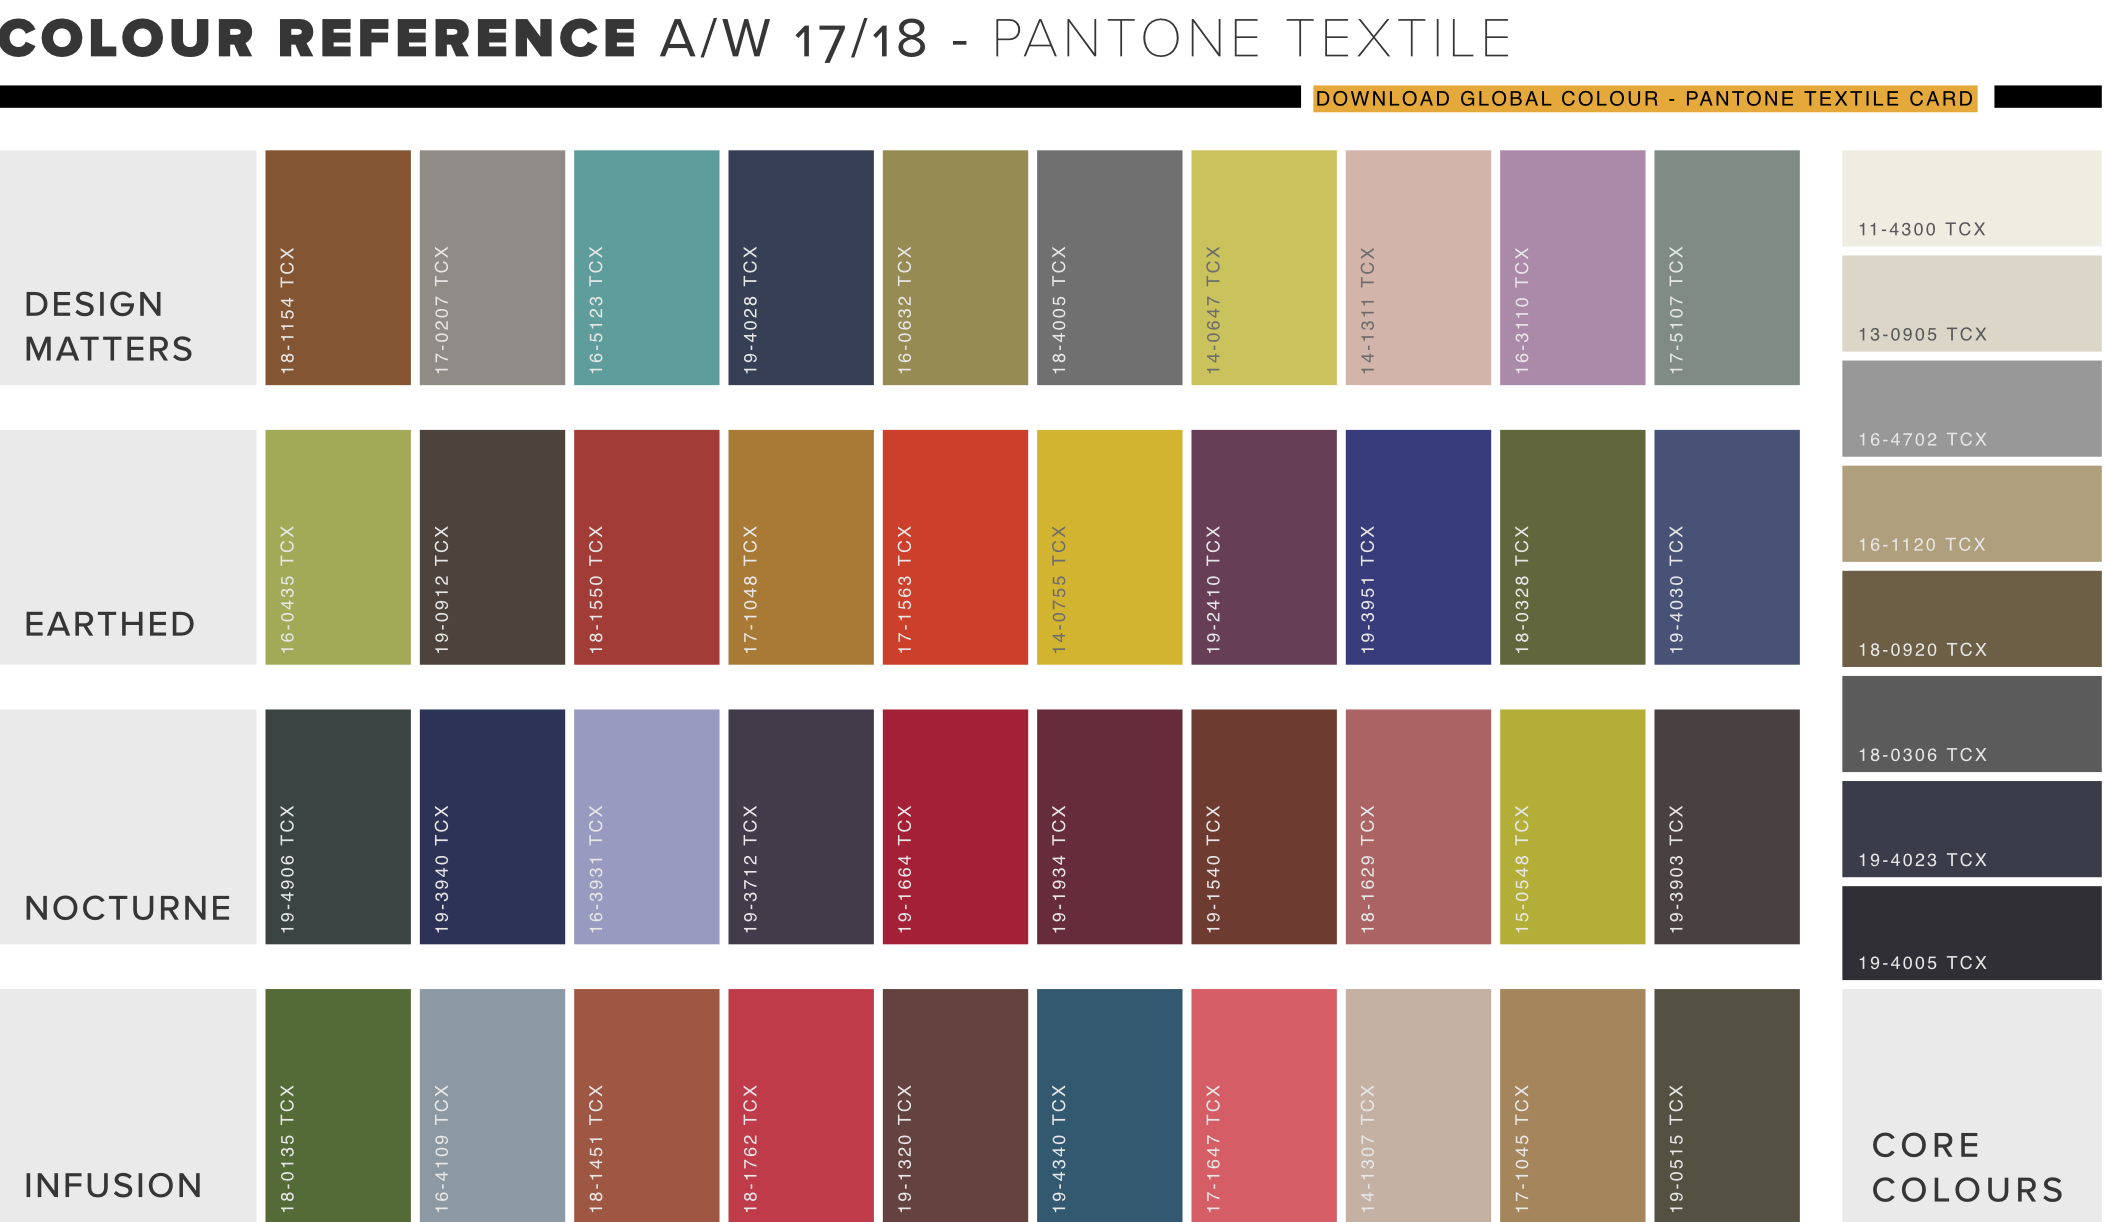 Wgsn fw1718 colour forecast trends pinterest aw17 winter wgsn fw1718 colour forecast geenschuldenfo Images